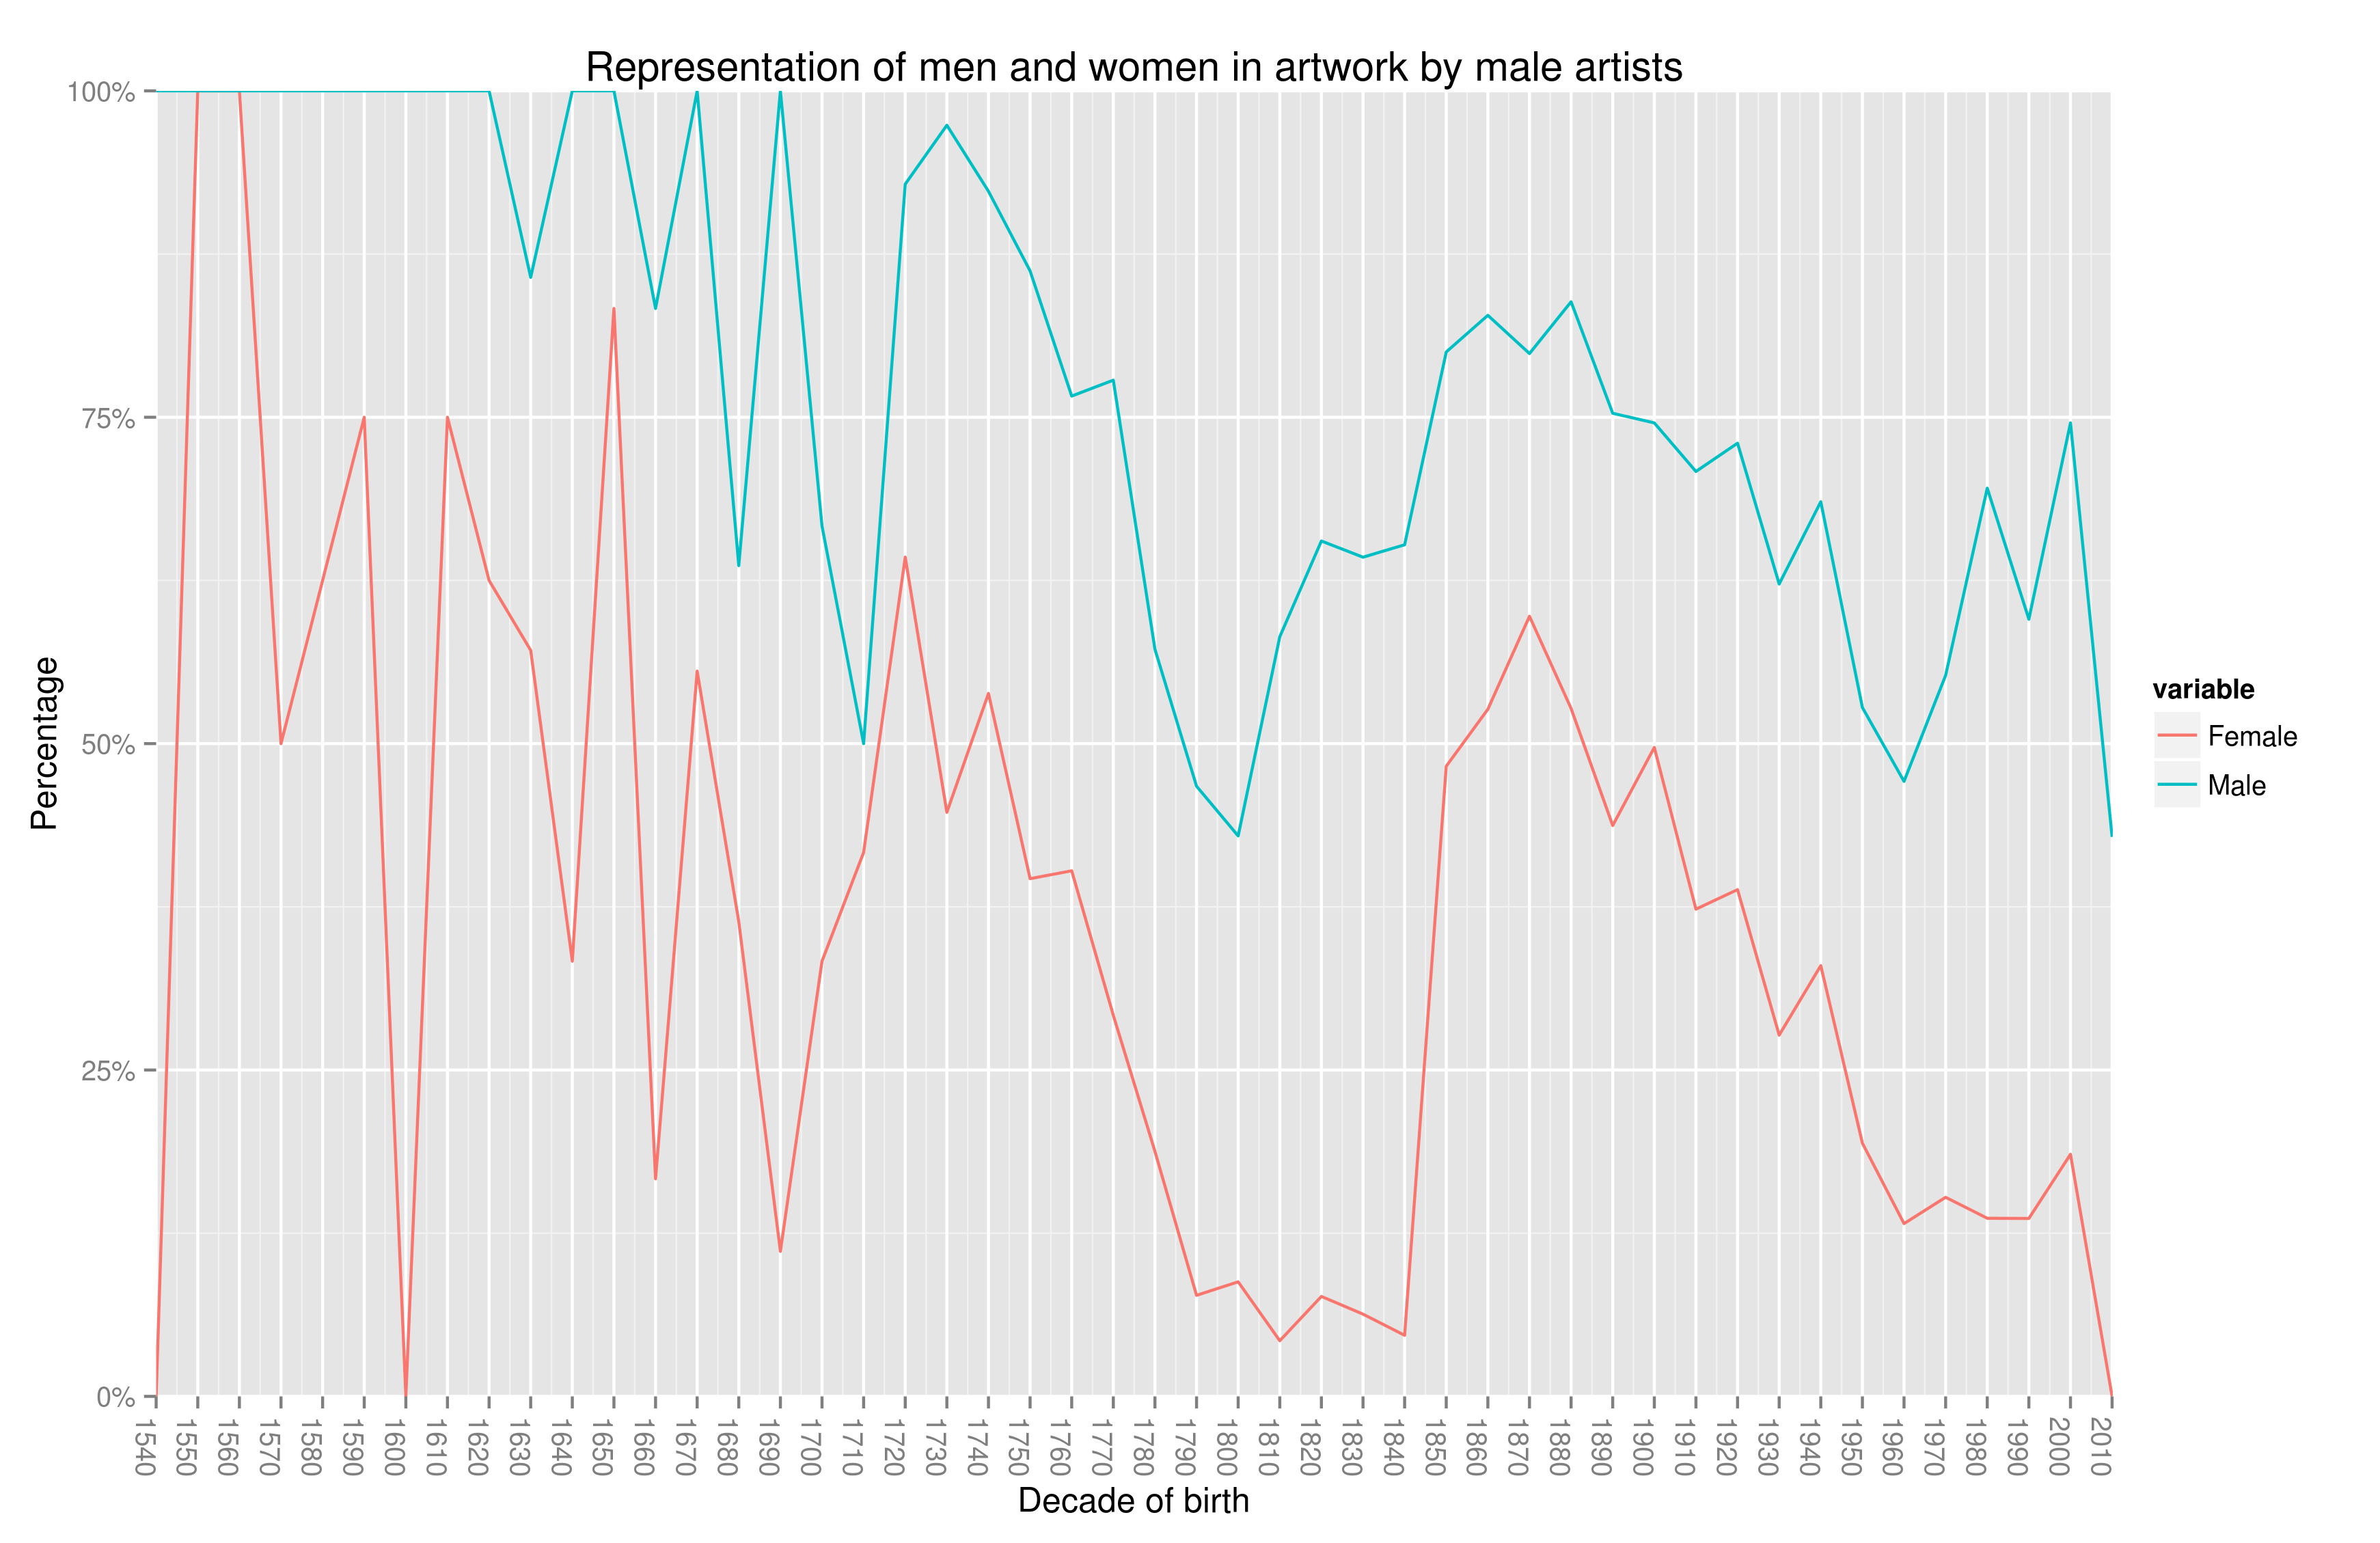 Representation of men and women in art by male artists